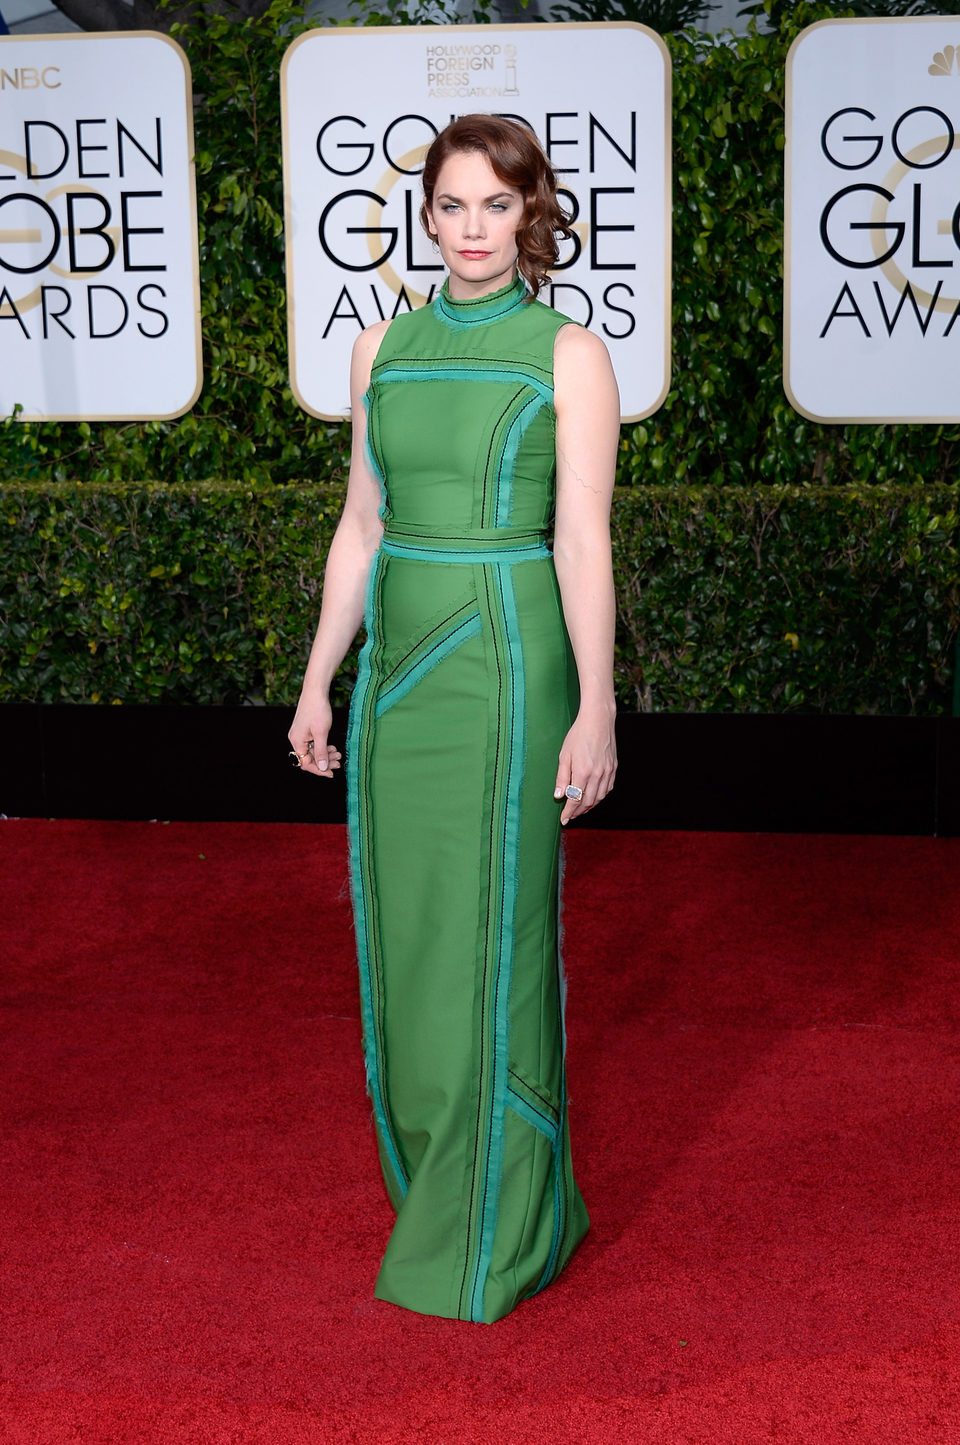 Ruth Wilson at the Golden Globes 2015 red carpet